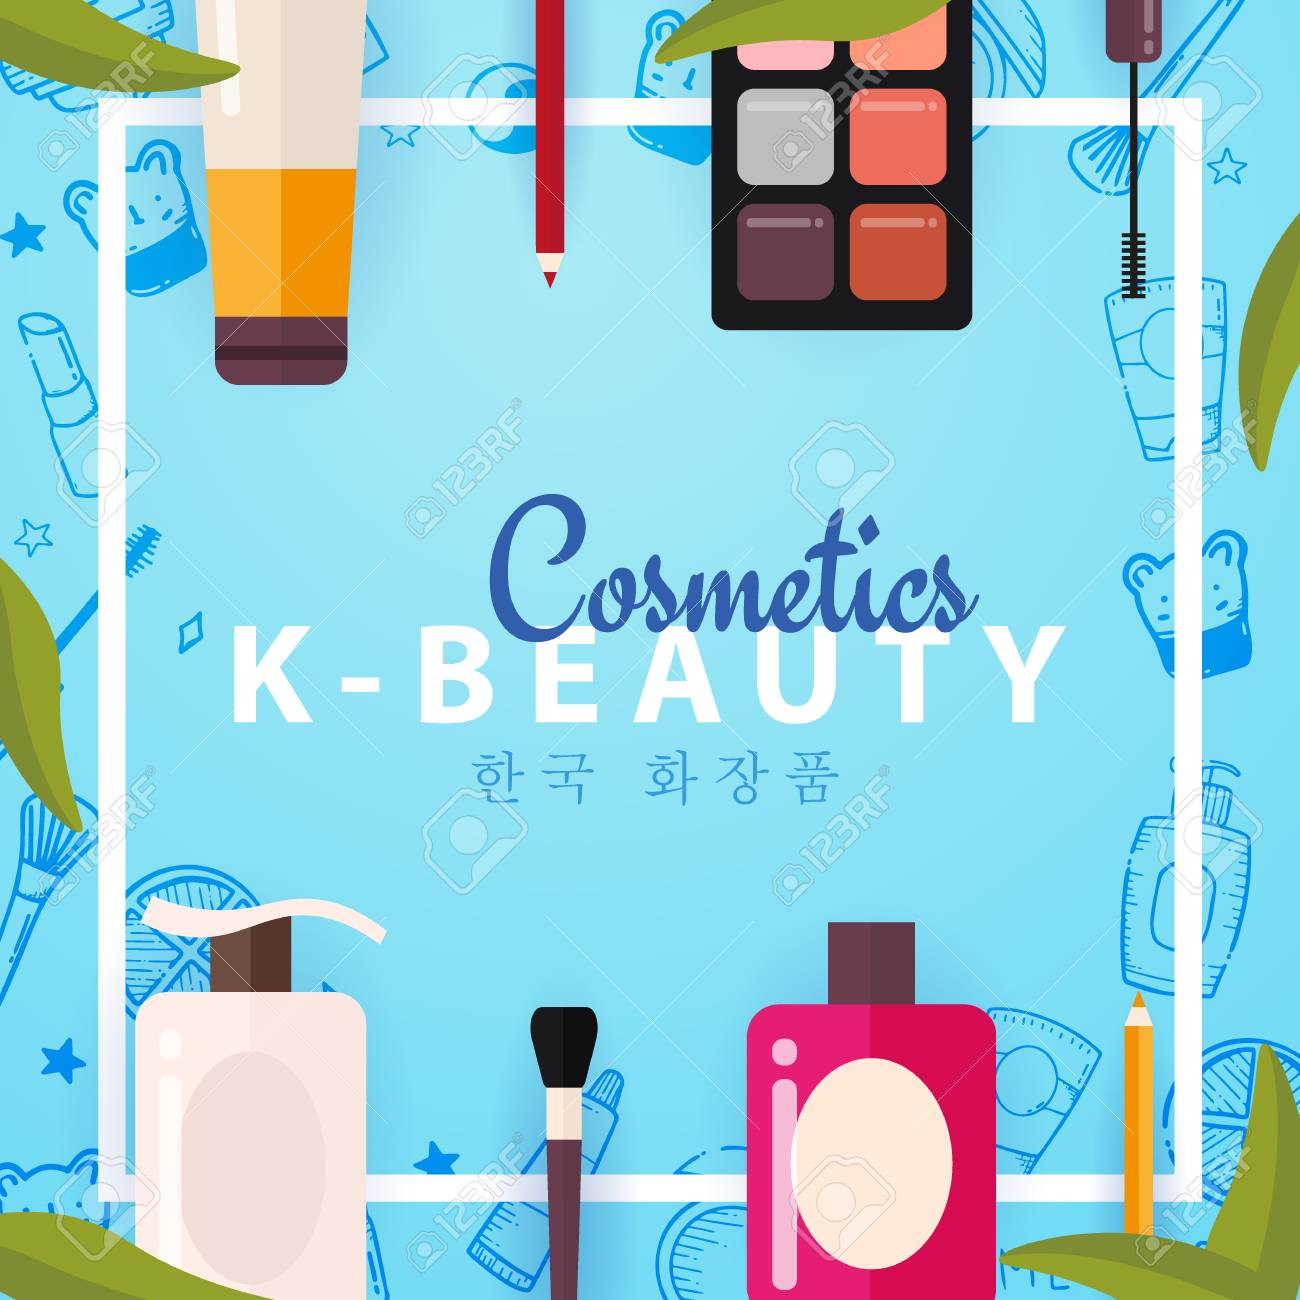 Korean Flat Cosmetics K Beauty Banner With Hand Draw Doodle Royalty Free Cliparts Vectors And Stock Illustration Image 122899216